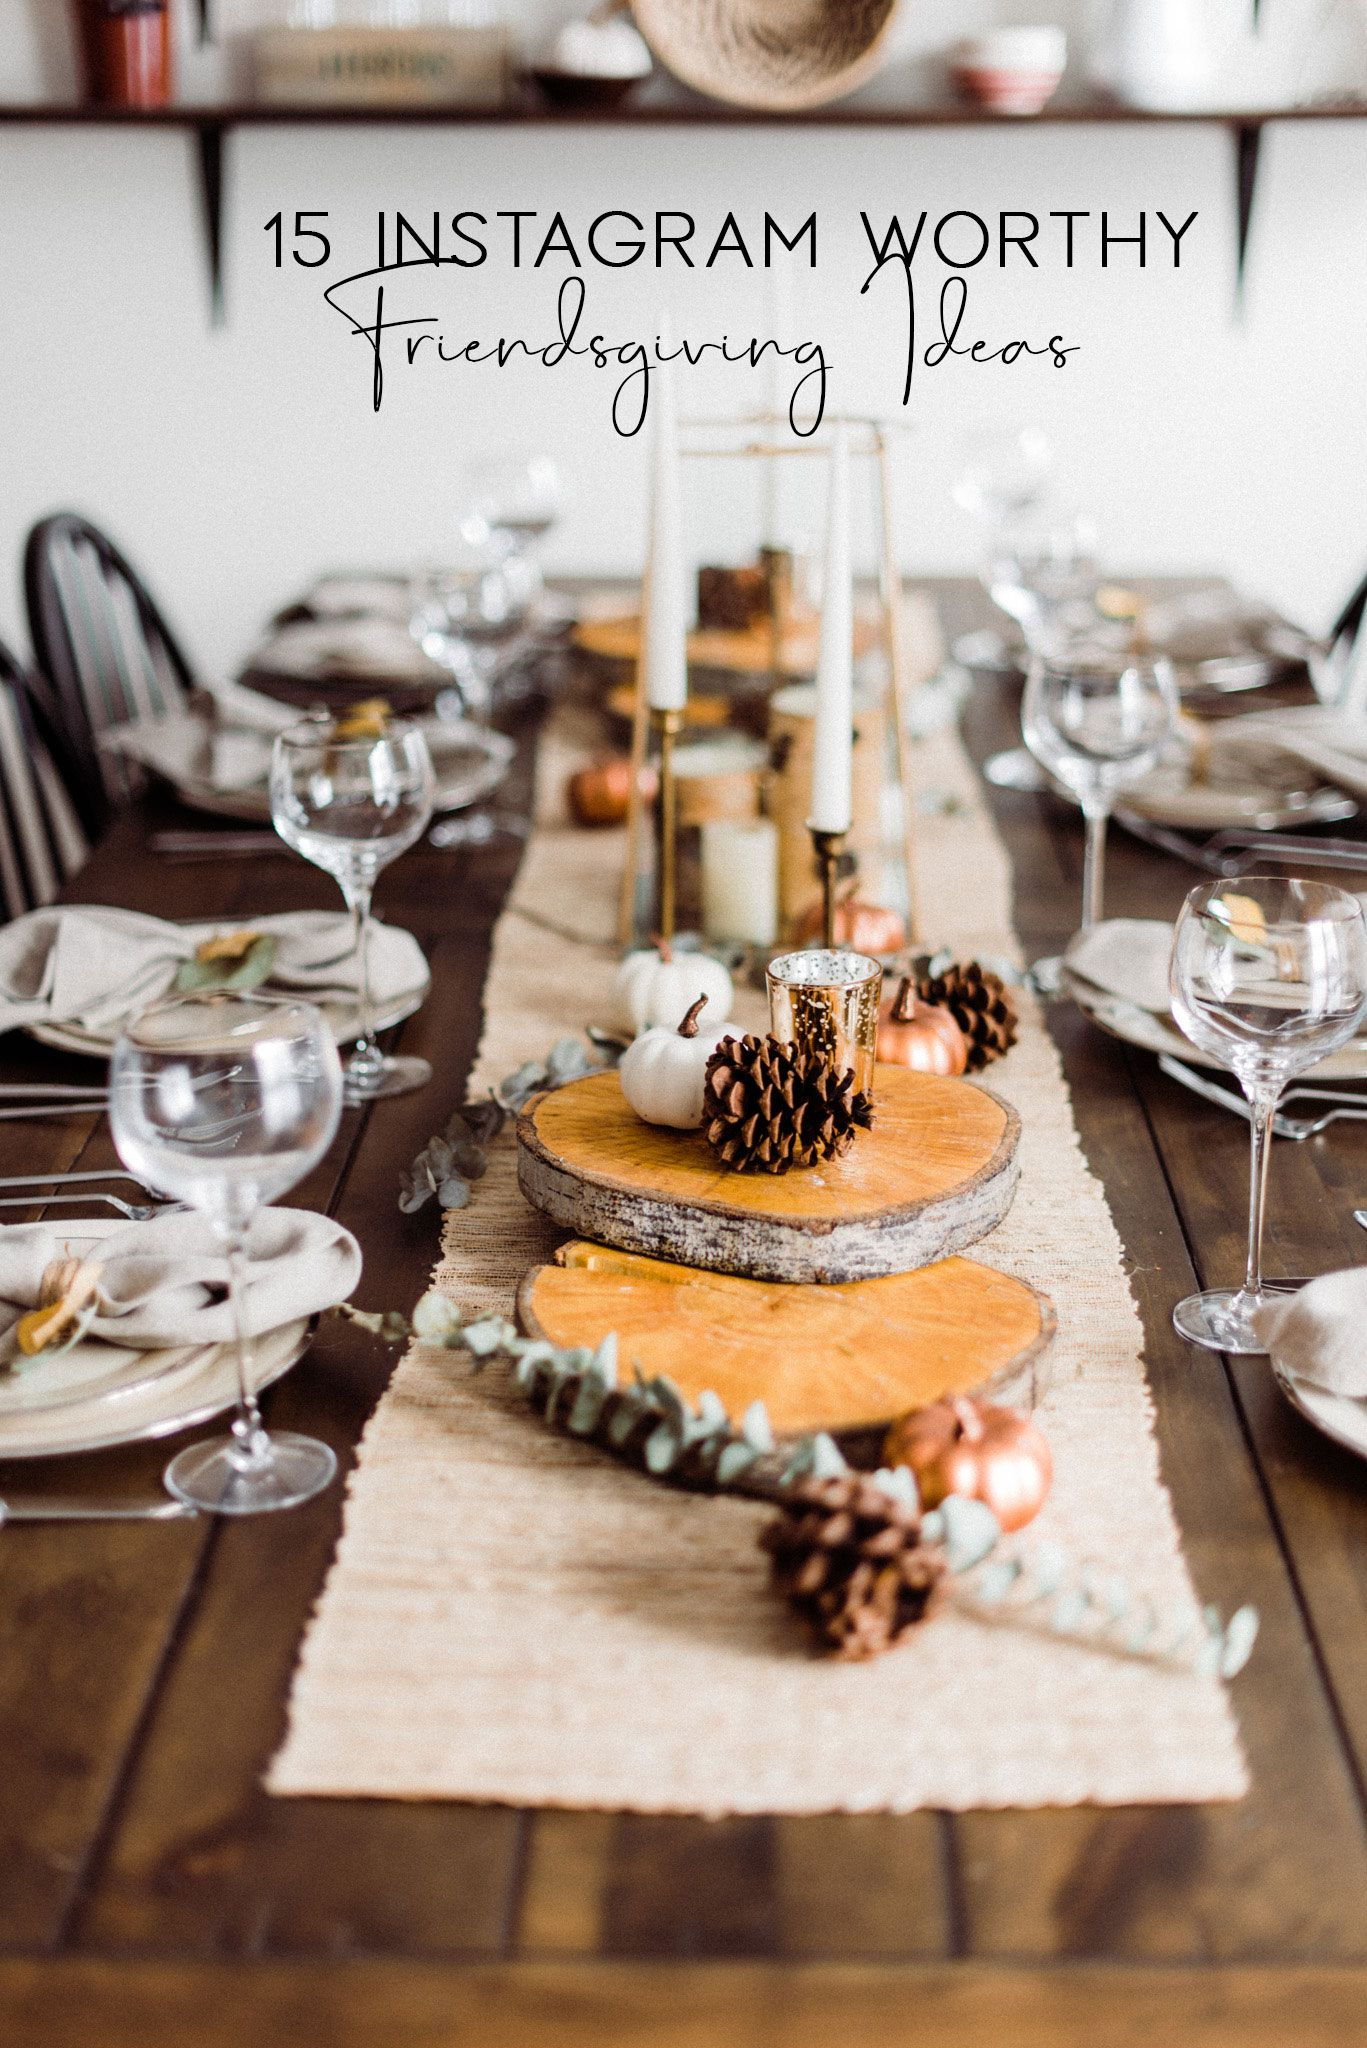 15 Instagram Worthy Friendsgiving Ideas